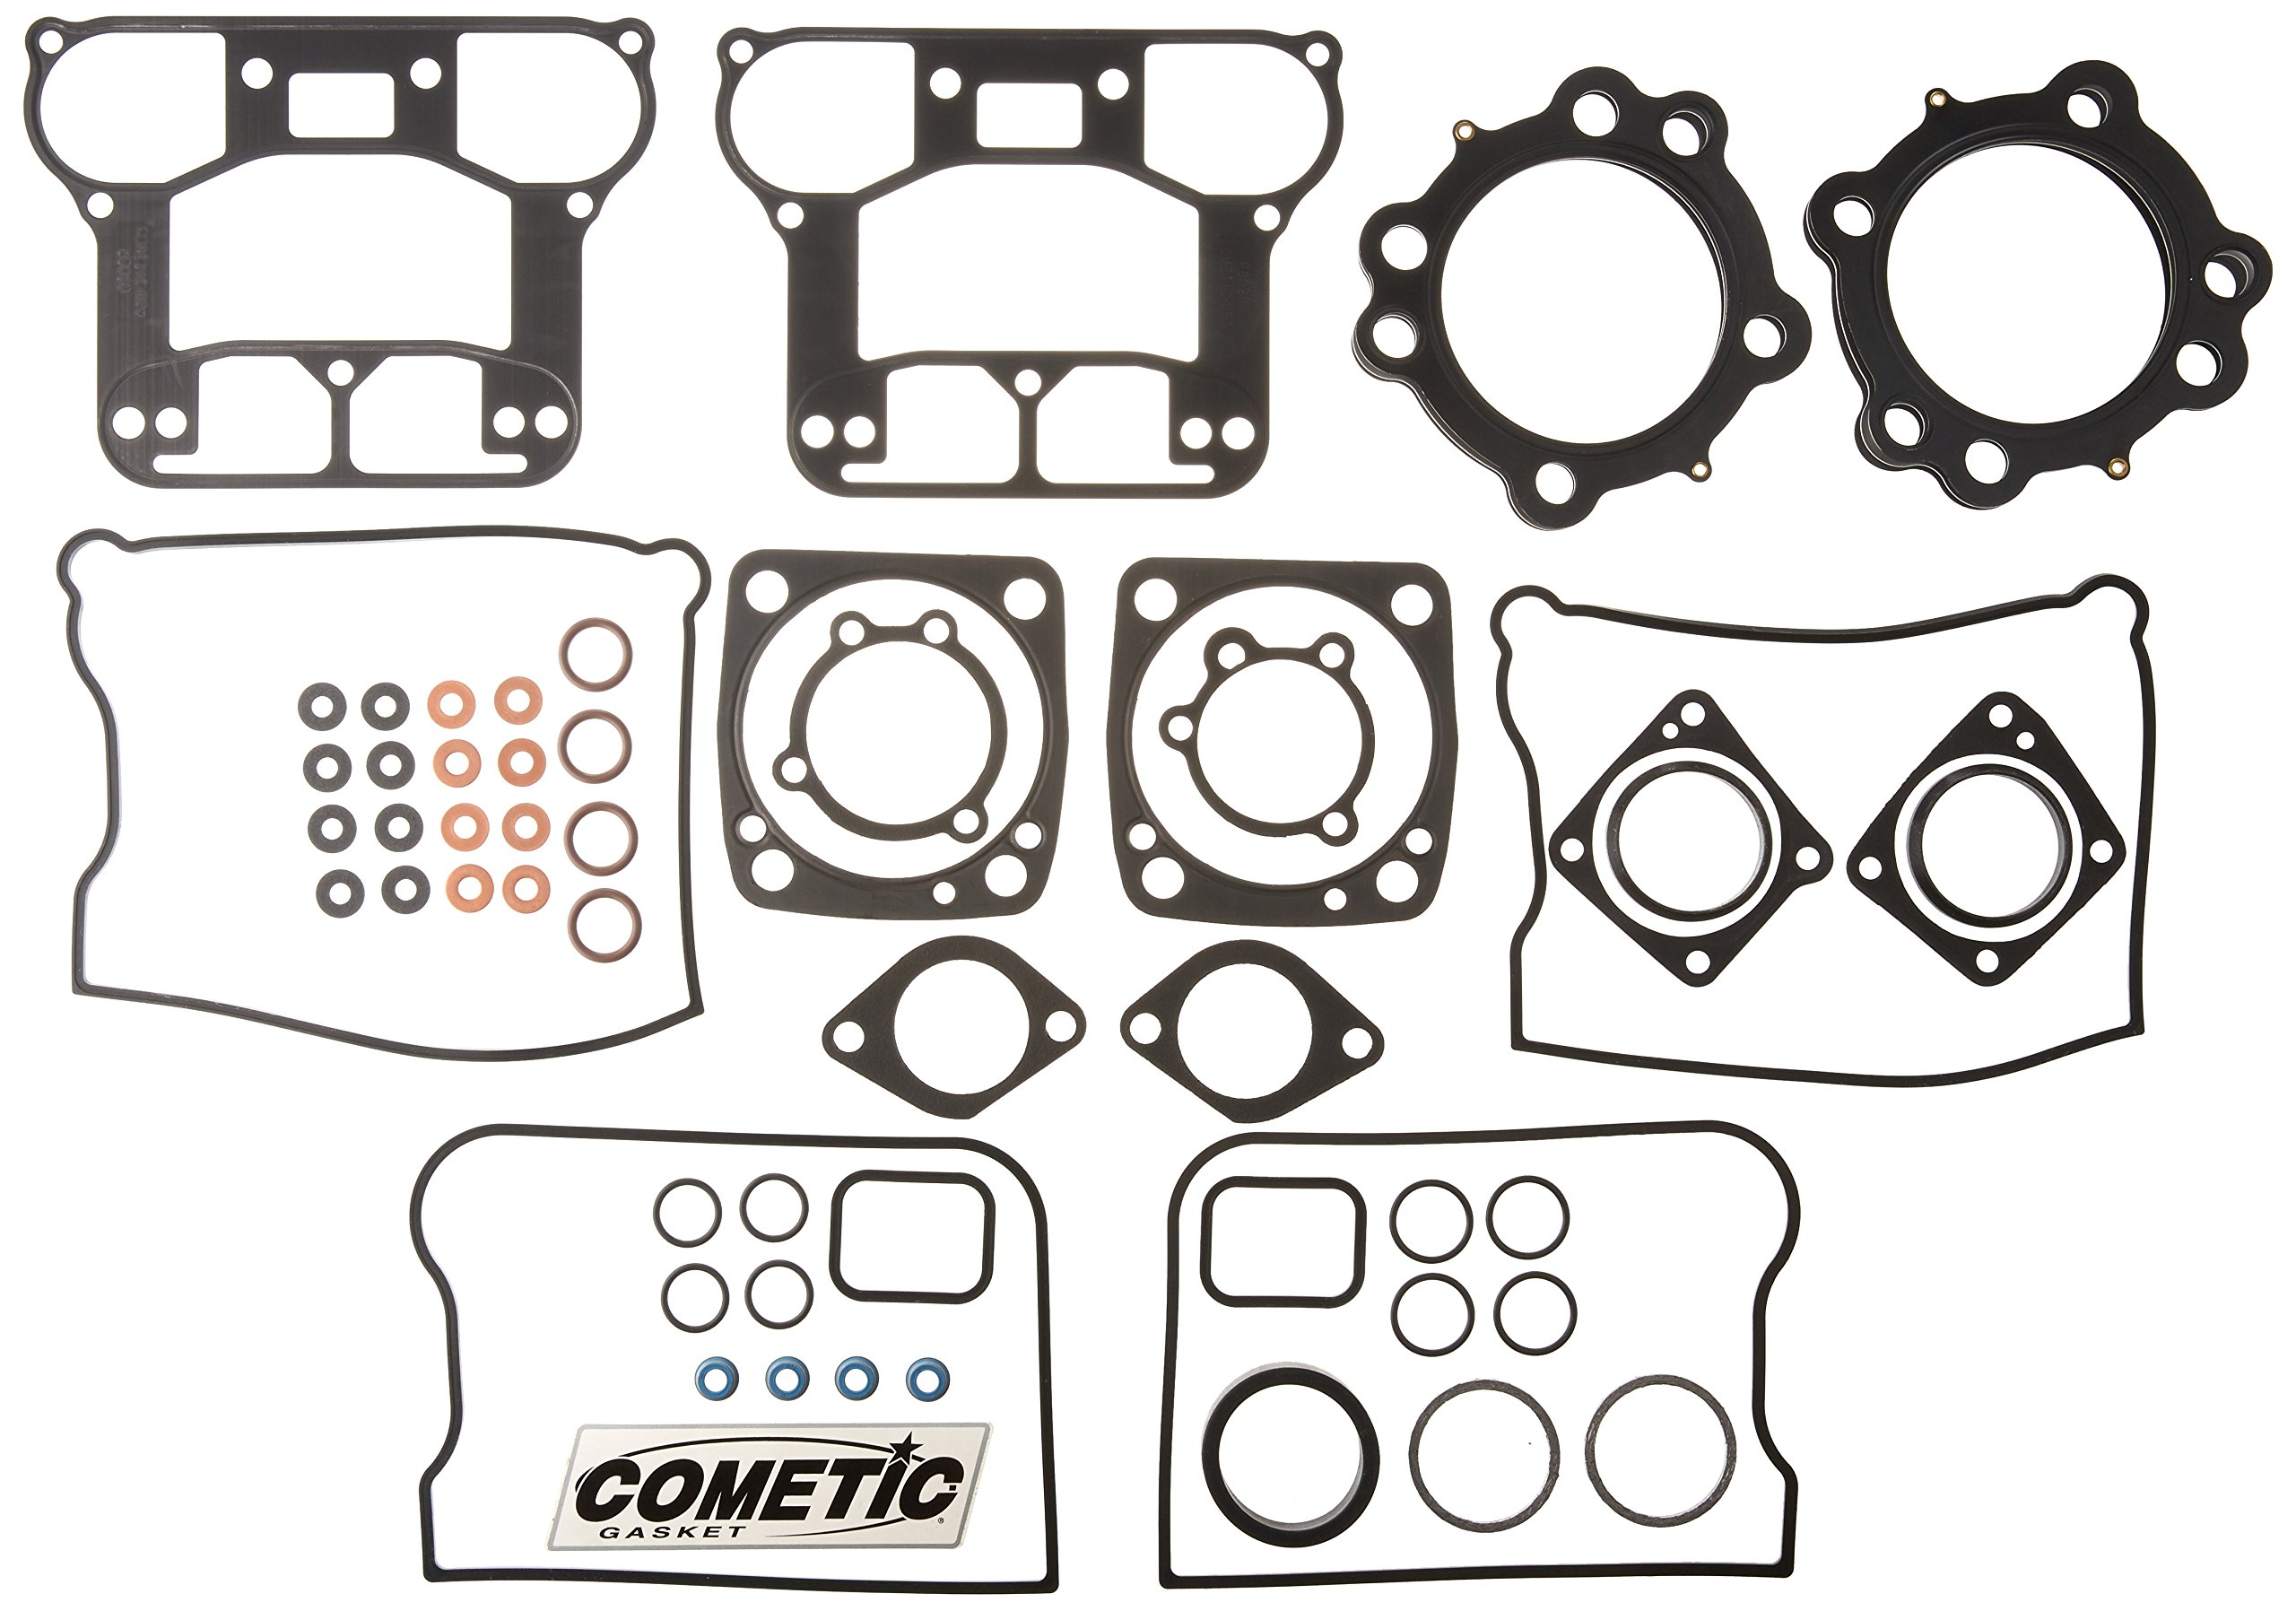 Cometic C9747 Top End Gasket Kit by Cometic Gasket